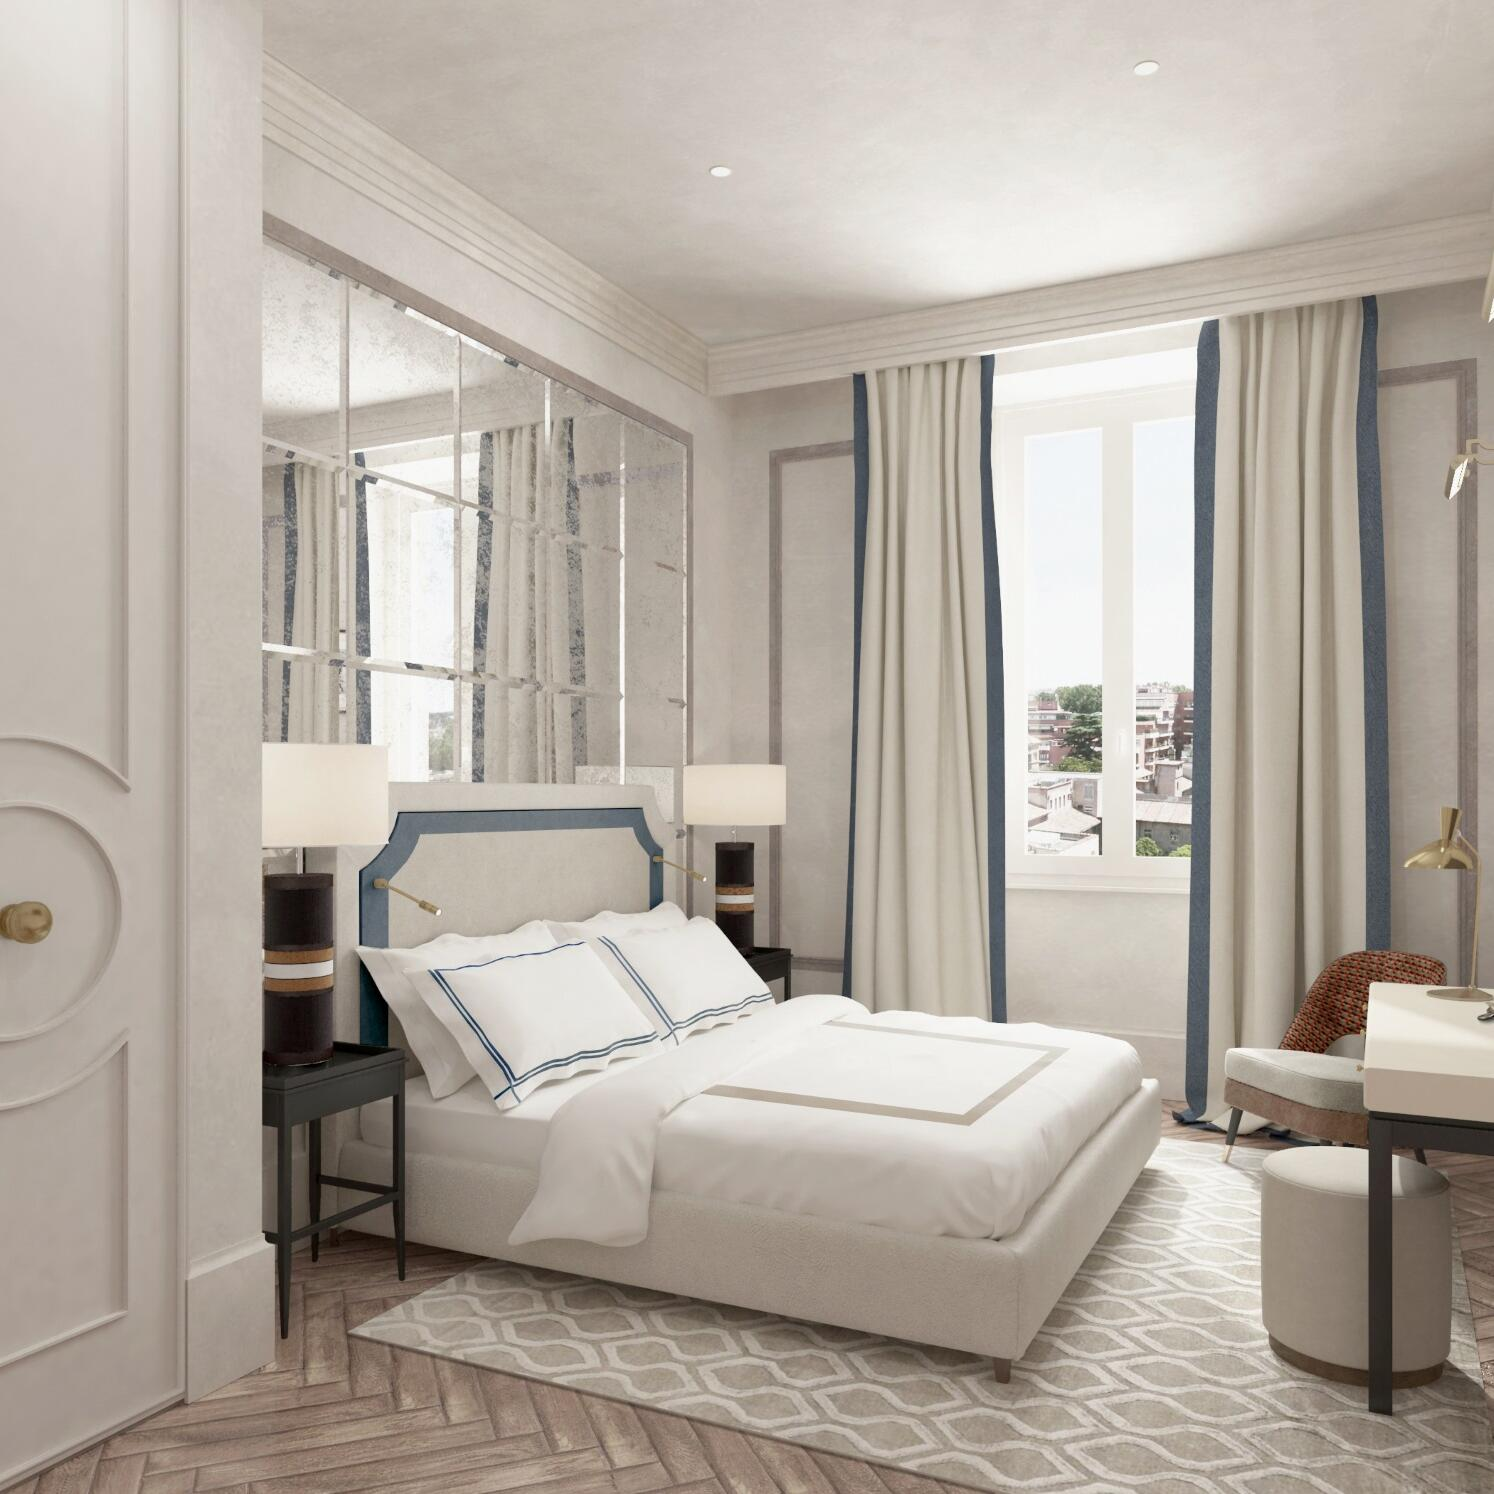 Concept Room UNAHOTELS Trastevere Roma